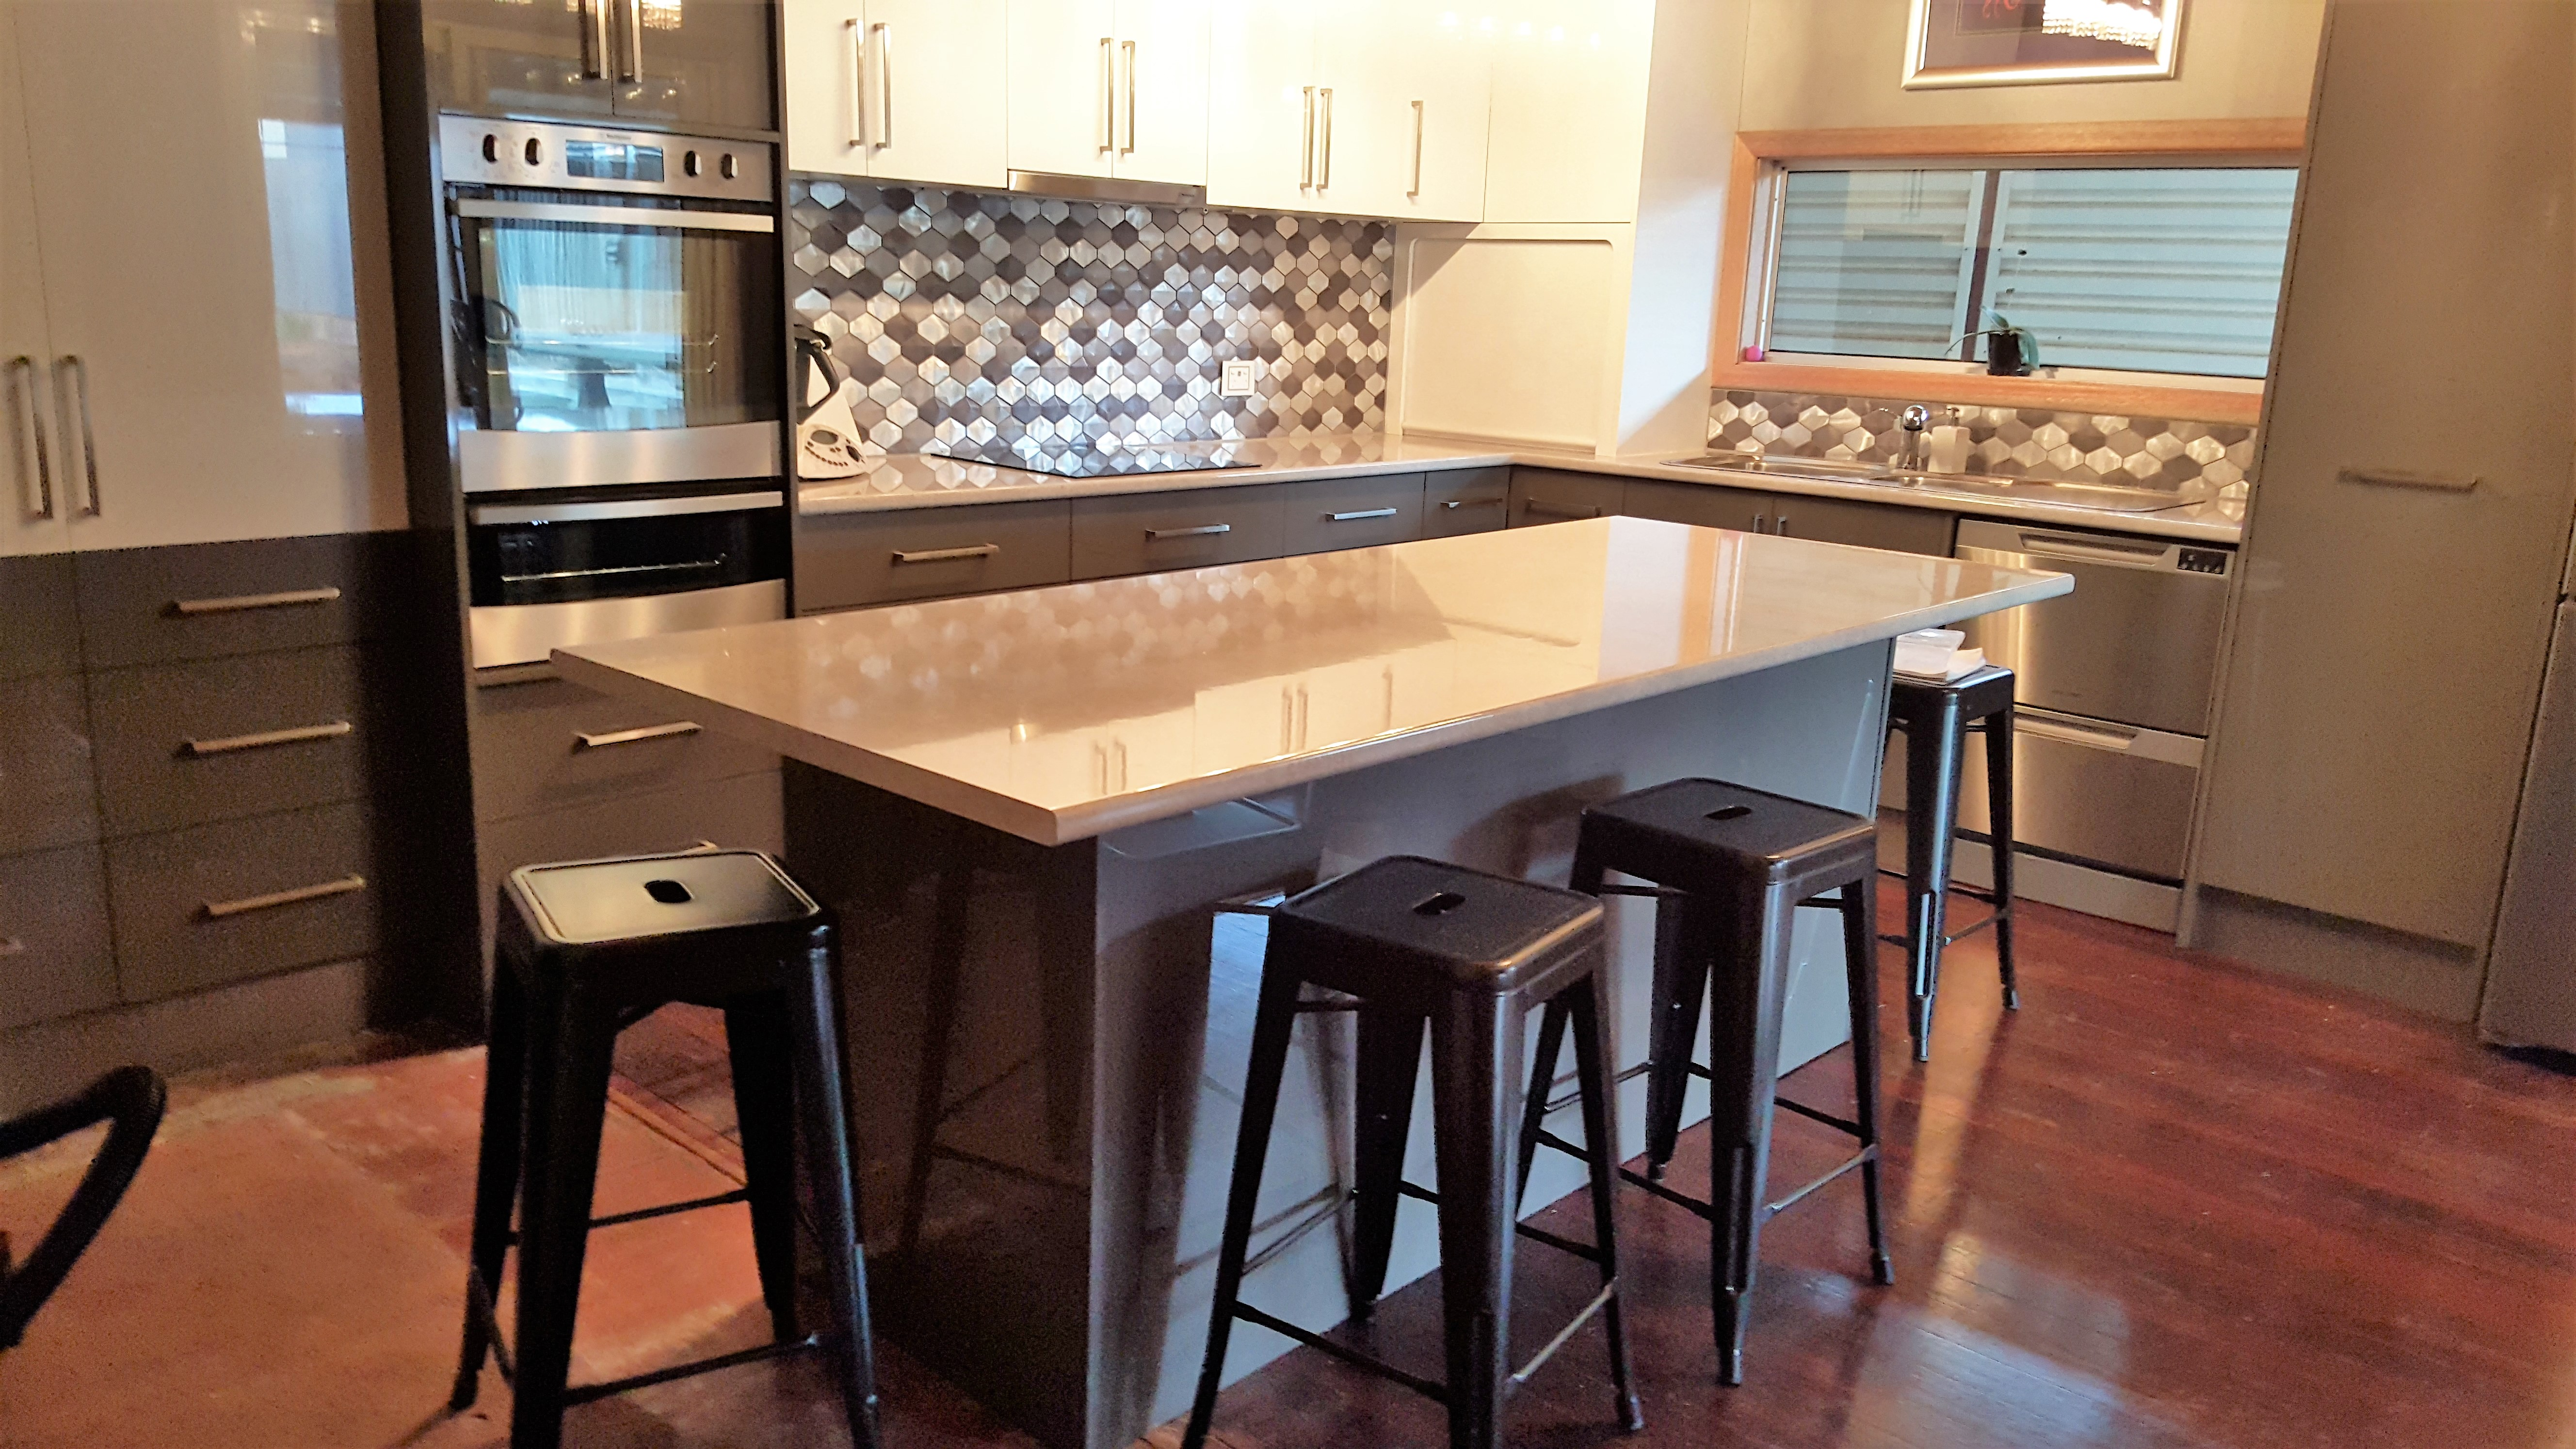 Picture of: Island Bench Extended At The End For Additional Seating Kitchens By Design Whyalla